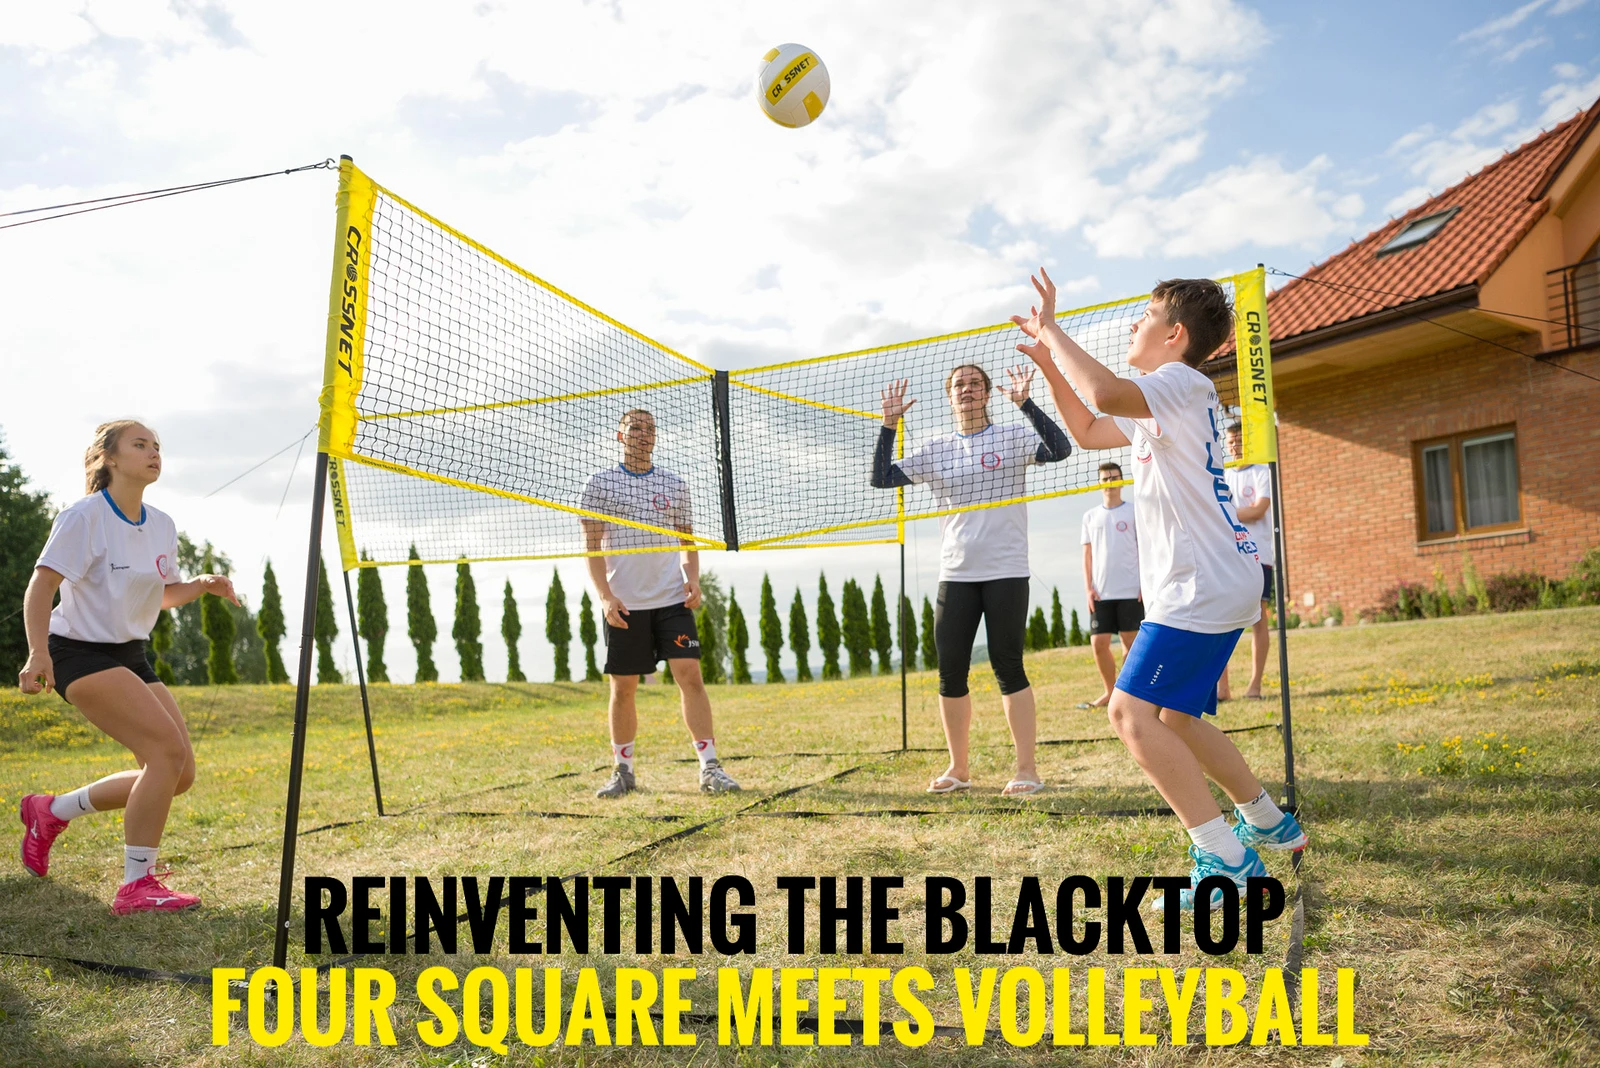 Decoology Quartet Volleyball Net Ship Within 24 Hours In 2020 Volleyball Volleyball Net Four Square